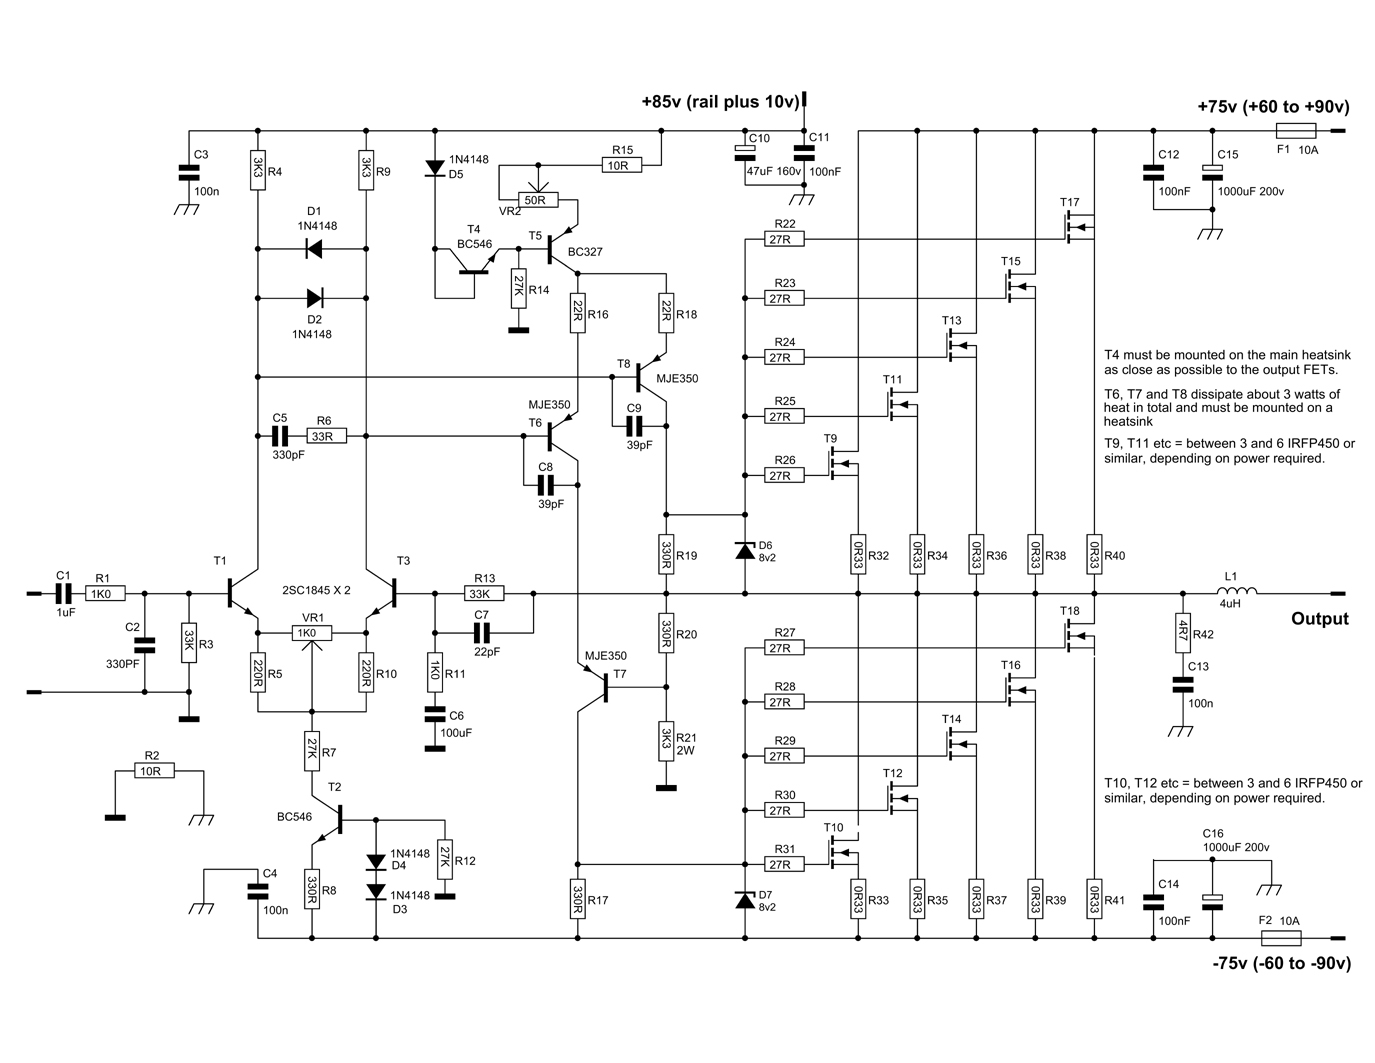 600 Watt Mosfet Power Amplifier With Pcb Schematic Diagram Under Repository-circuits